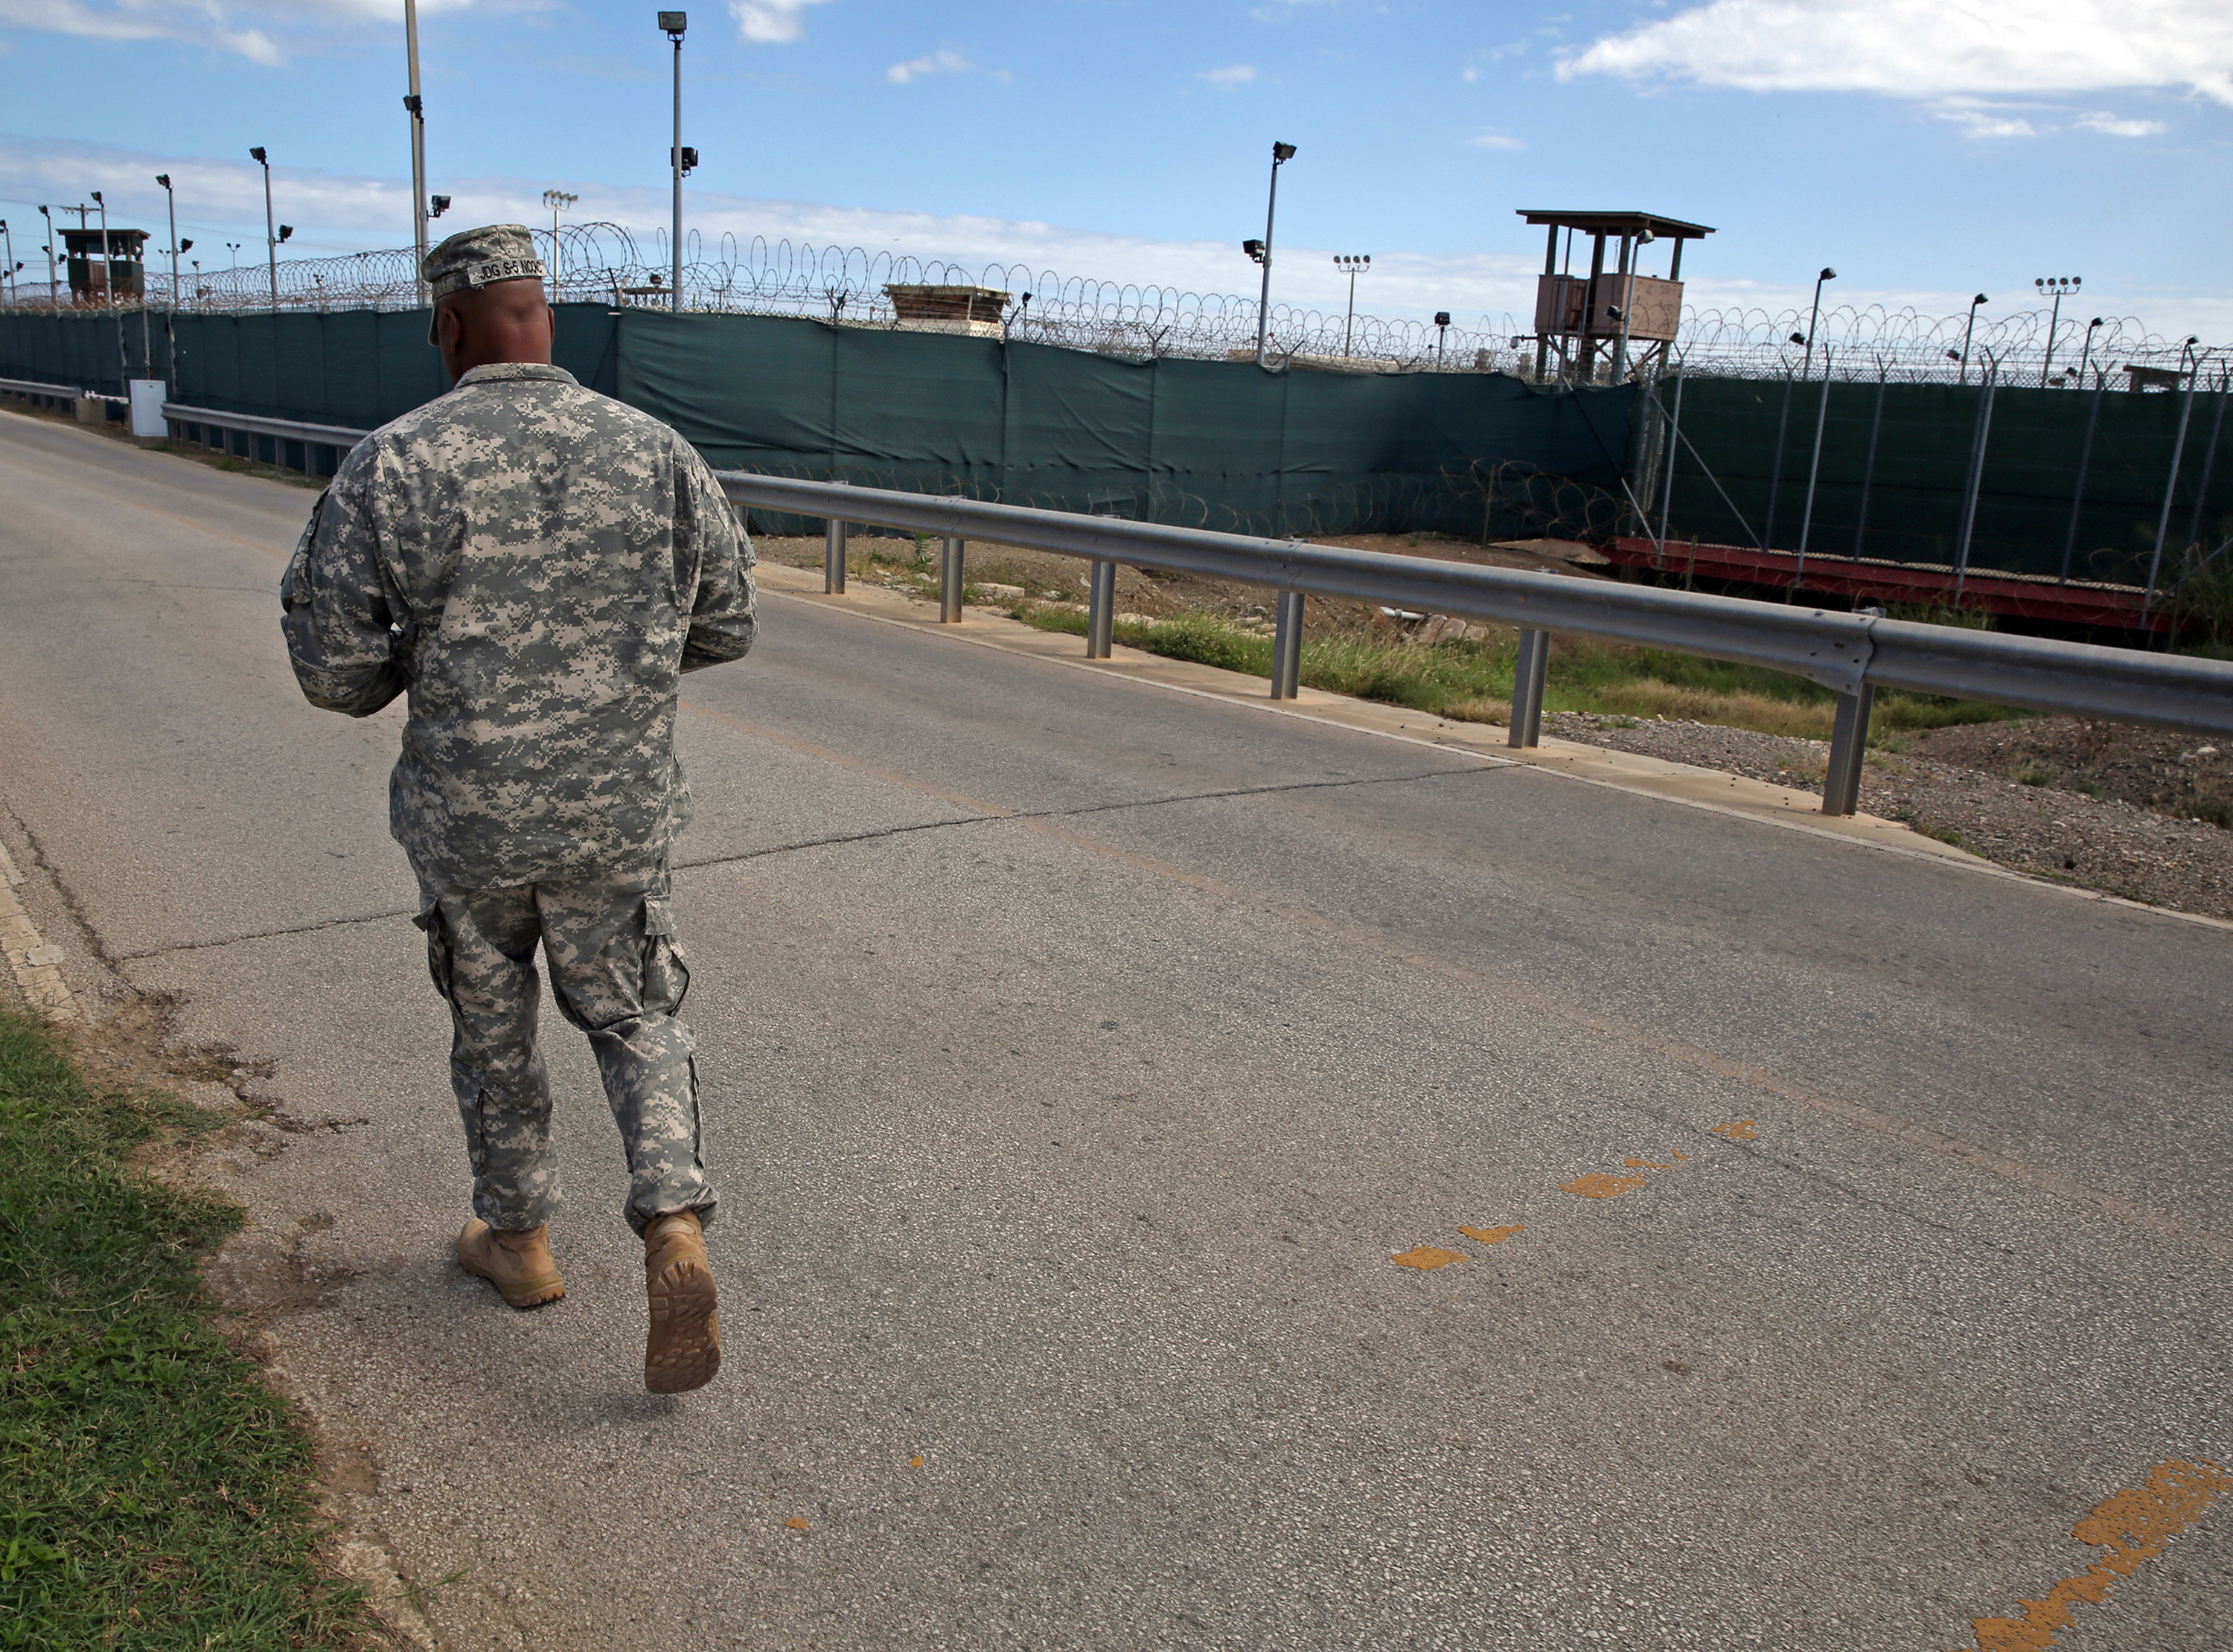 A soldier walks by Camp Delta, which no longer holds detainees, on Tuesday, Nov. 4, 2014 at the U.S. Navy base at Guantanamo Bay, Cuba in this photo approved for release by the U.S. military.